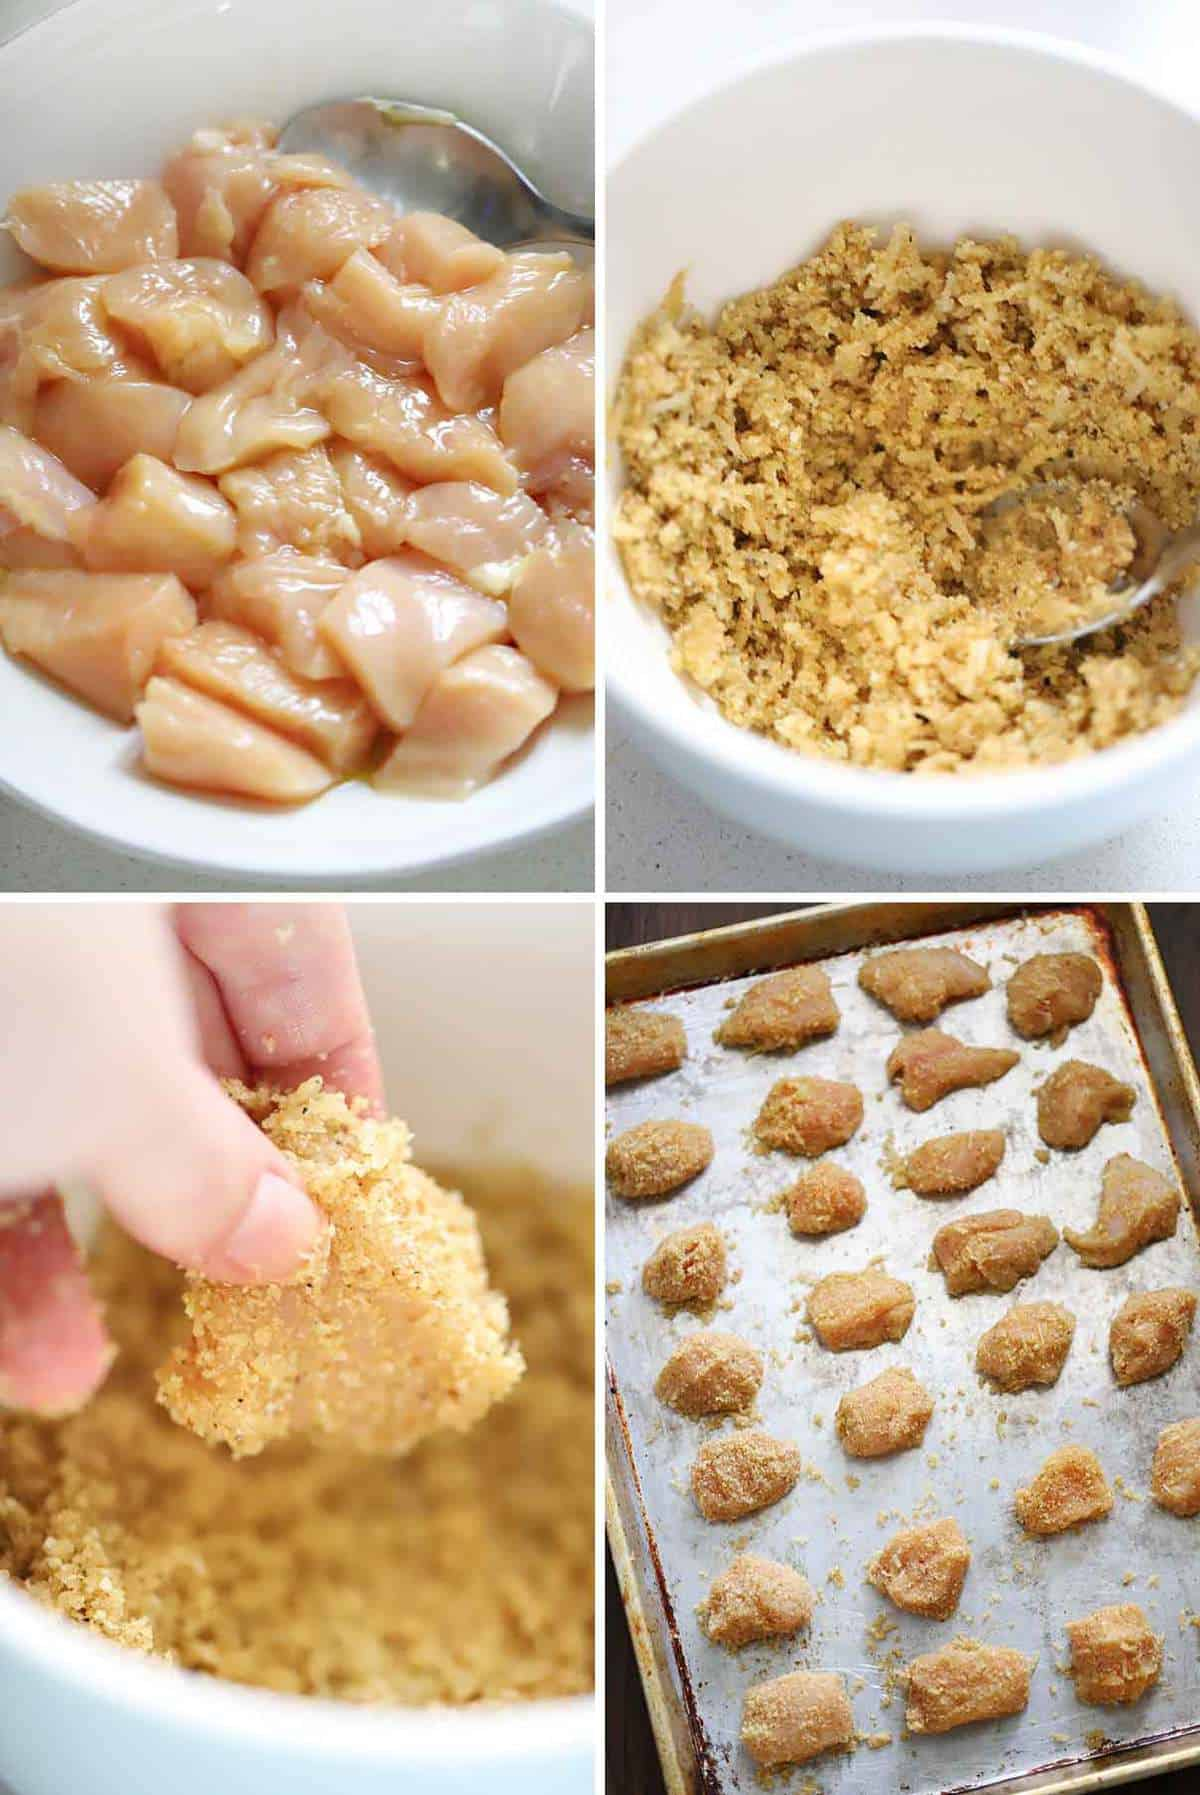 Process collage showing how to make homemade chicken nuggets with breadcrumb coating.